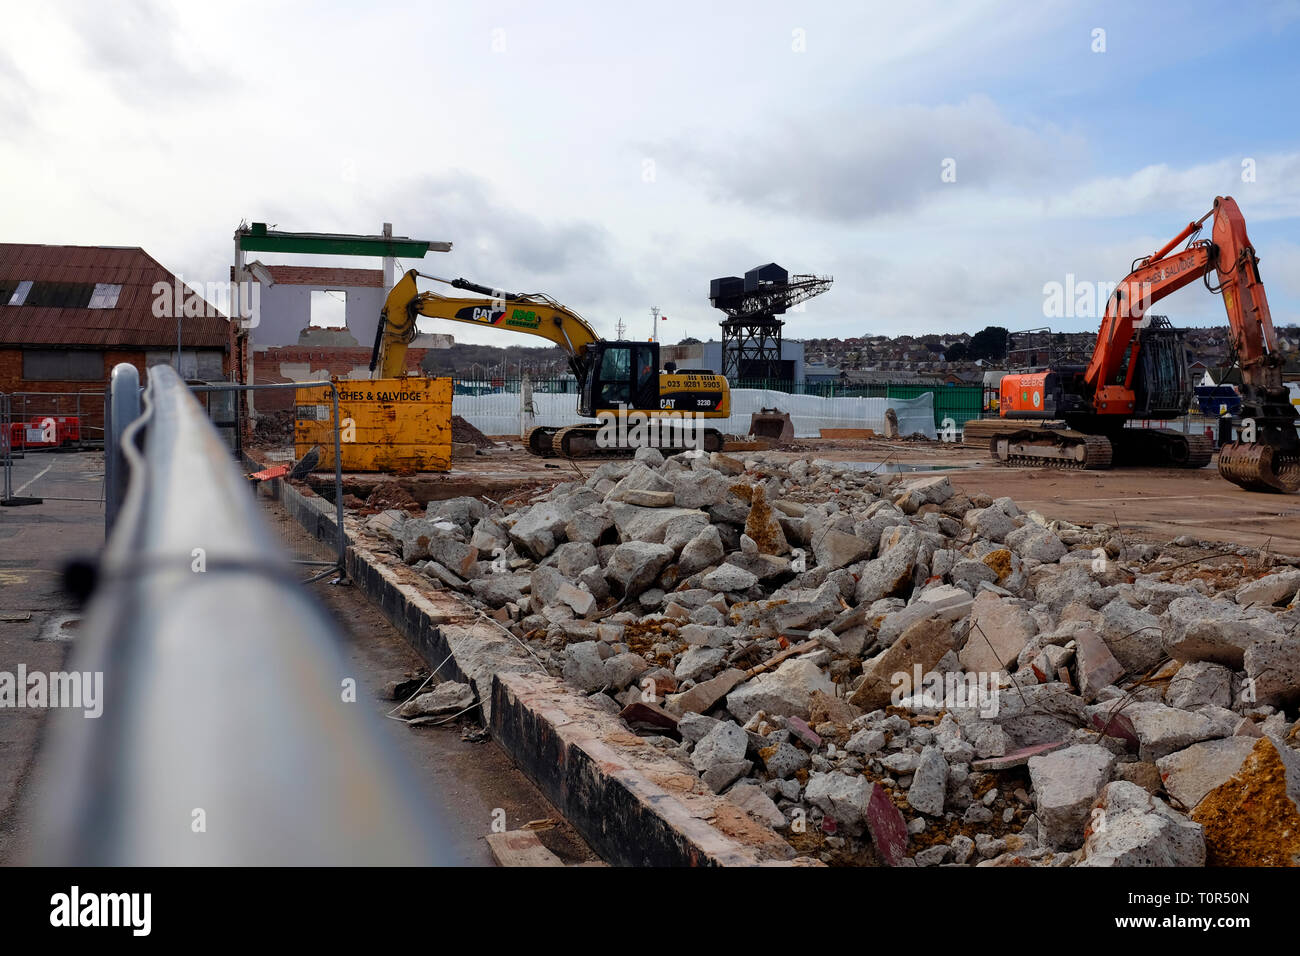 view,over,fence,of,demolition,site,building,diggers,factory,warehouse,concrete,debris,bricks,roof,East Cowes, Isle of Wight,England,UK, - Stock Image